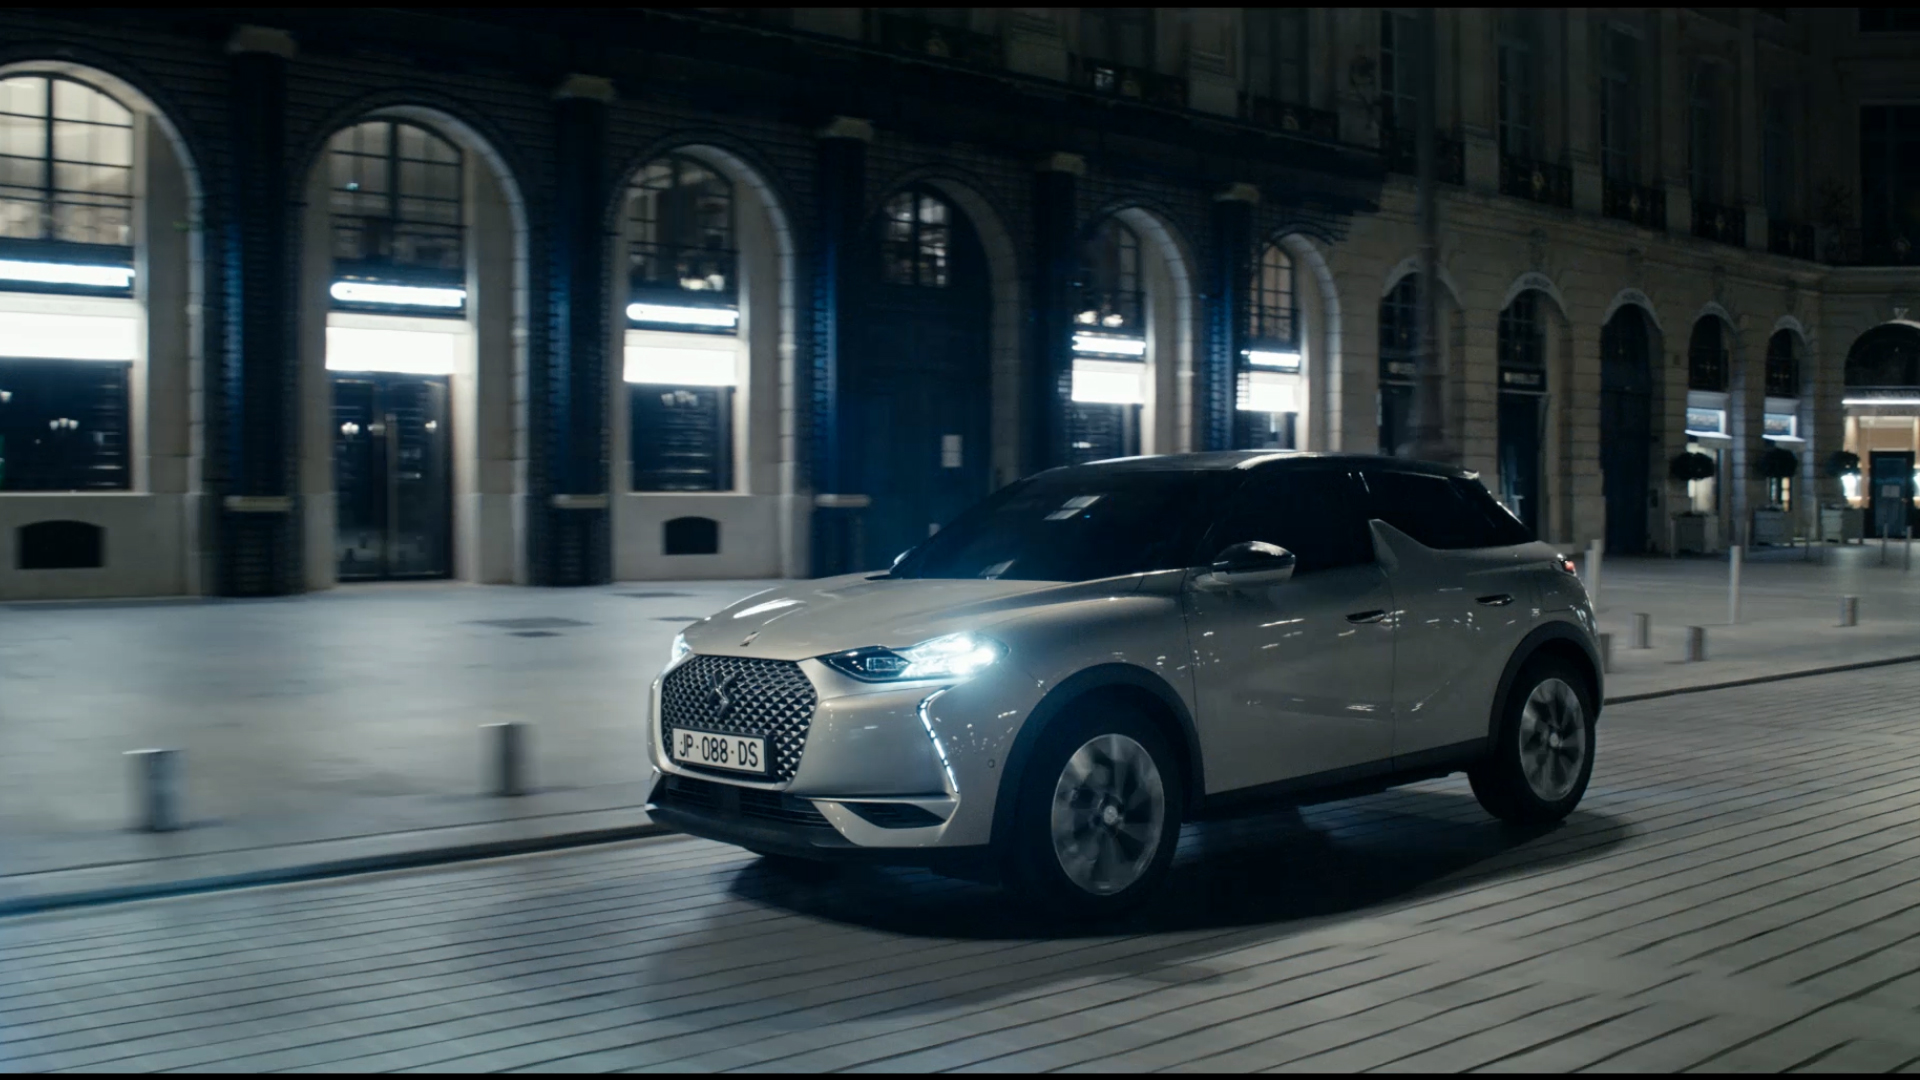 DS 3 CROSSBACK project thumbnail